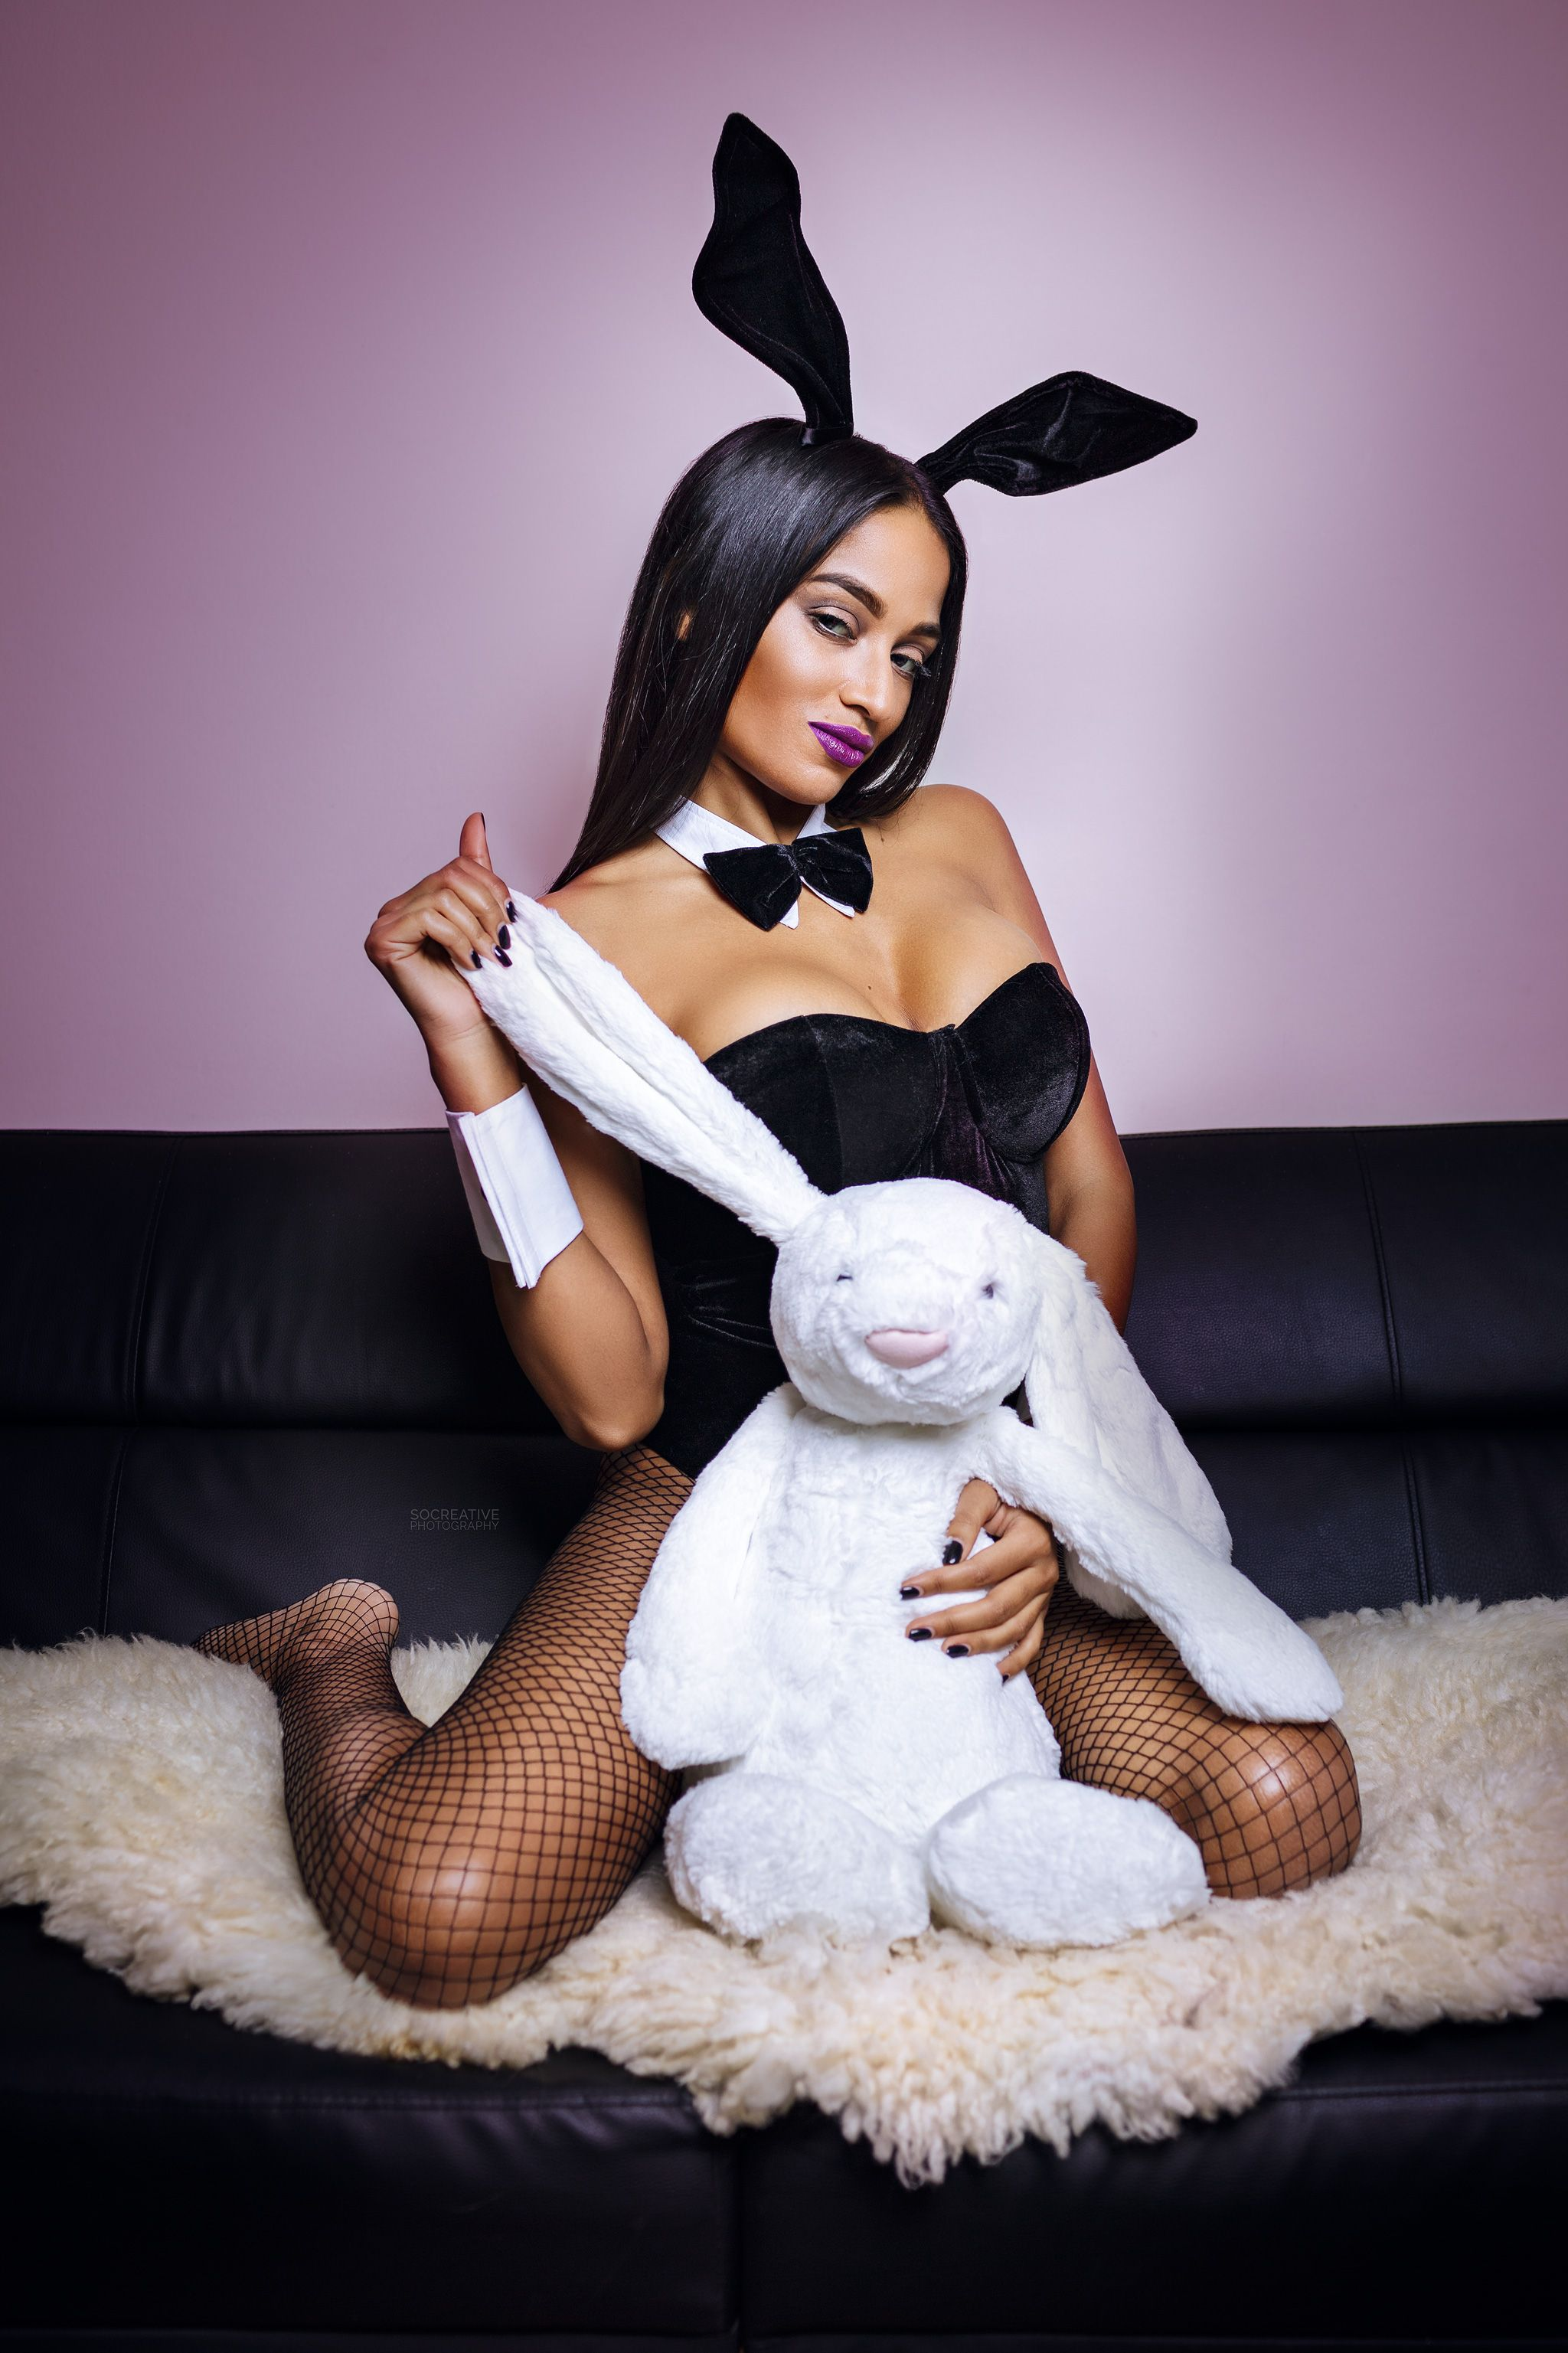 Pin On Sexy Easter